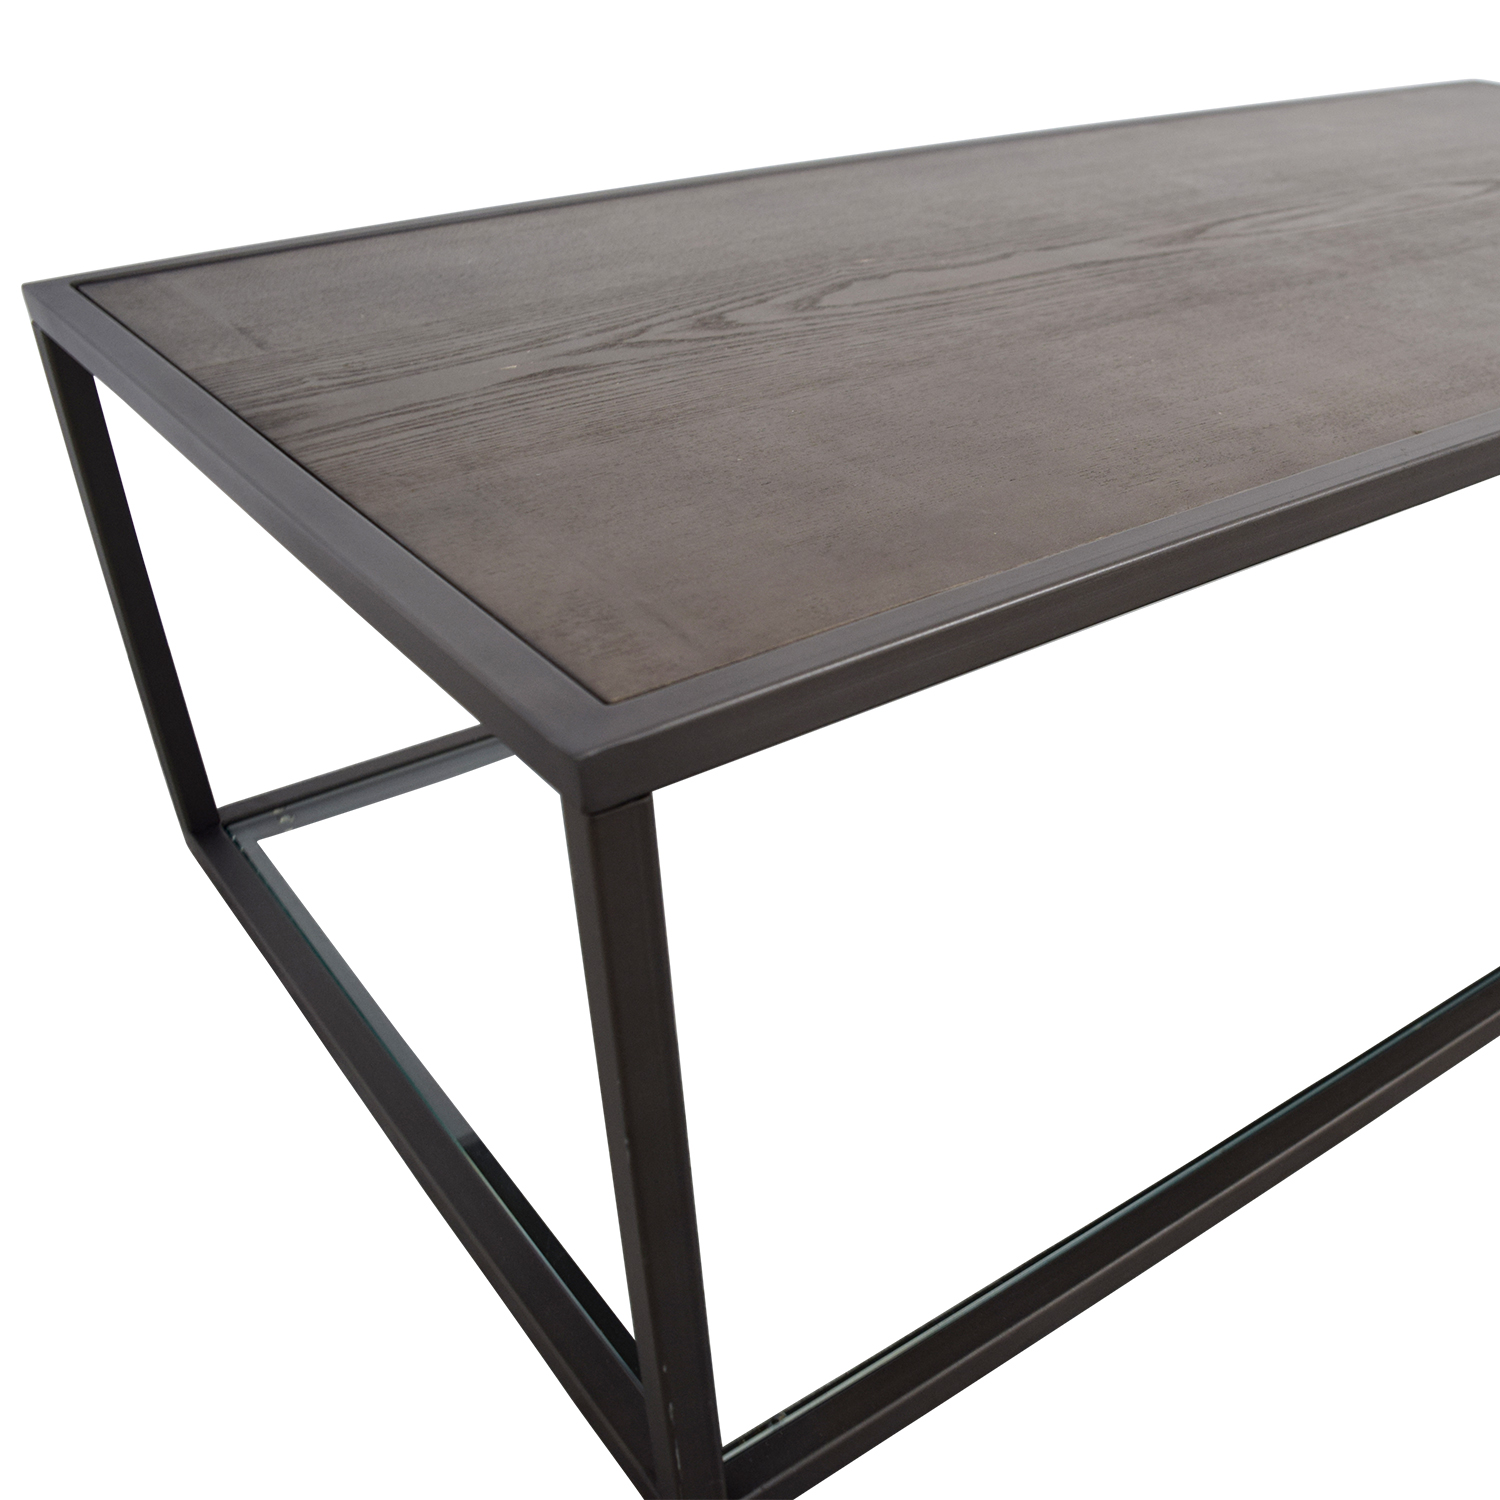 72 Off Crate Barrel Crate Barrel Switch Coffee Table Tables